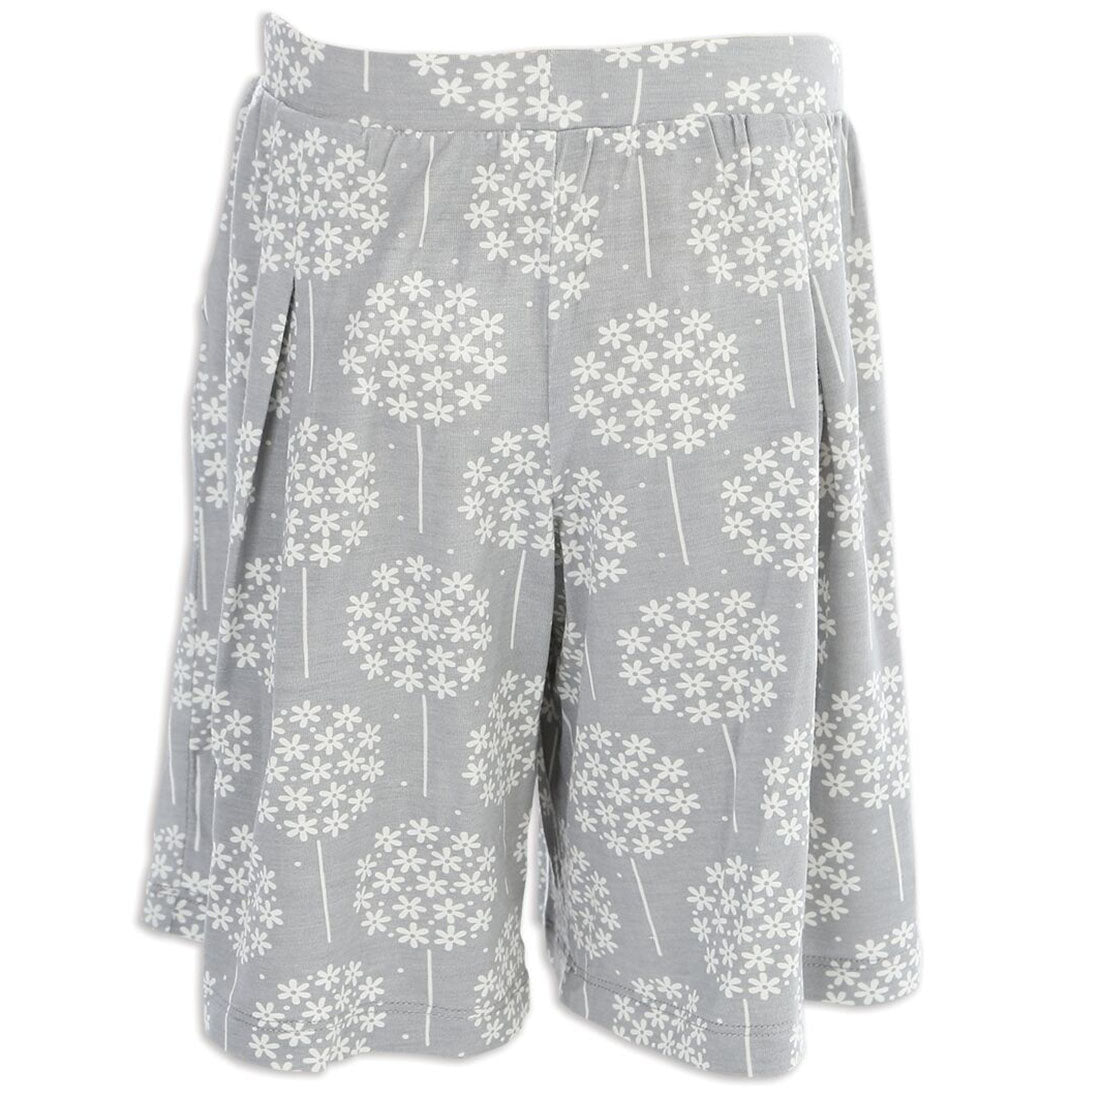 Silkberry Baby Bamboo Girls Culottes - Dandelion